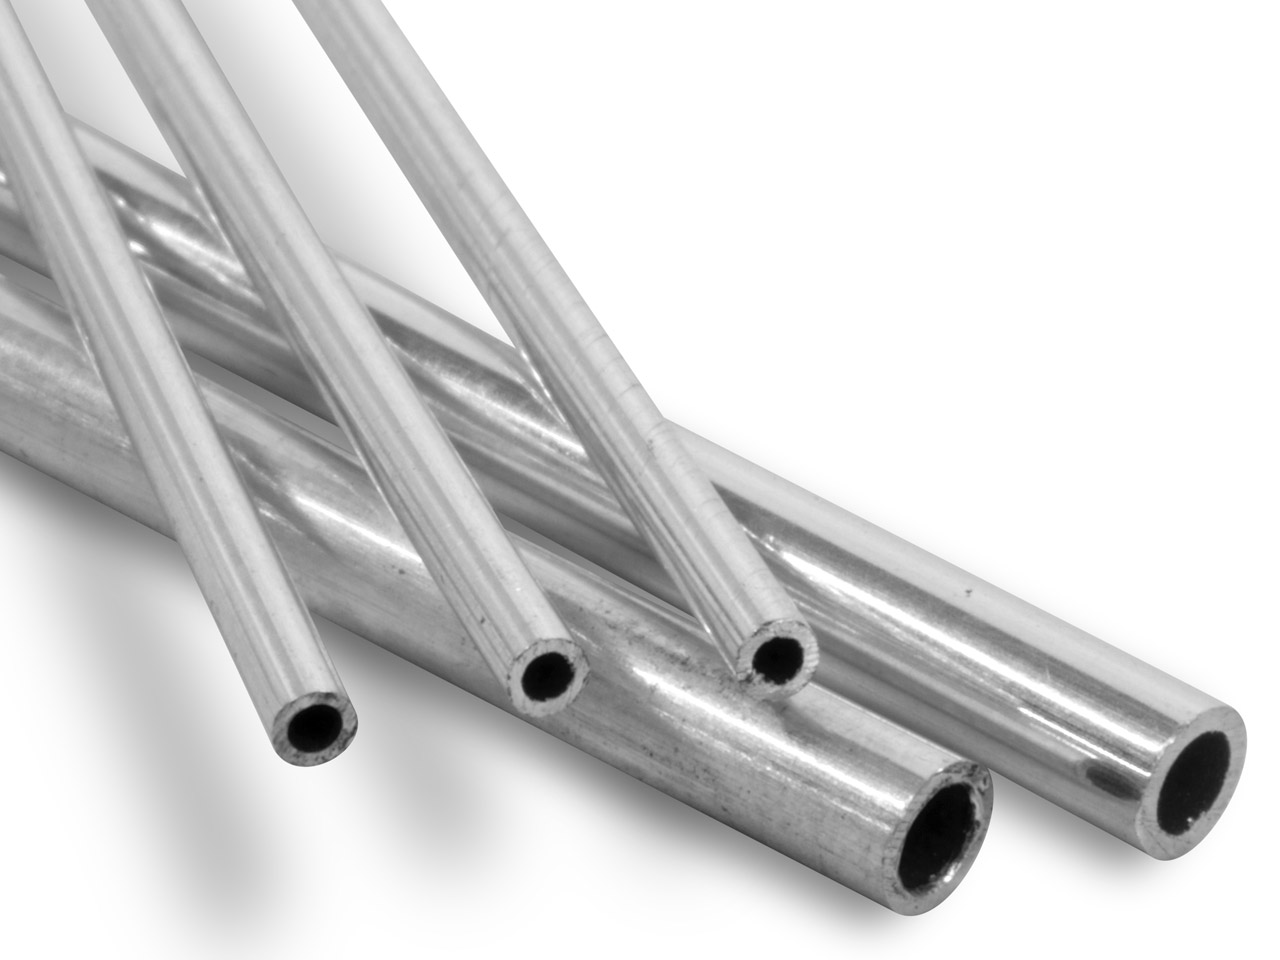 Sterling Silver Tube, Ref 16,      Outside Diameter 1.0mm,            Inside Diameter 0.65mm, 0.175mm    Wall Thickness